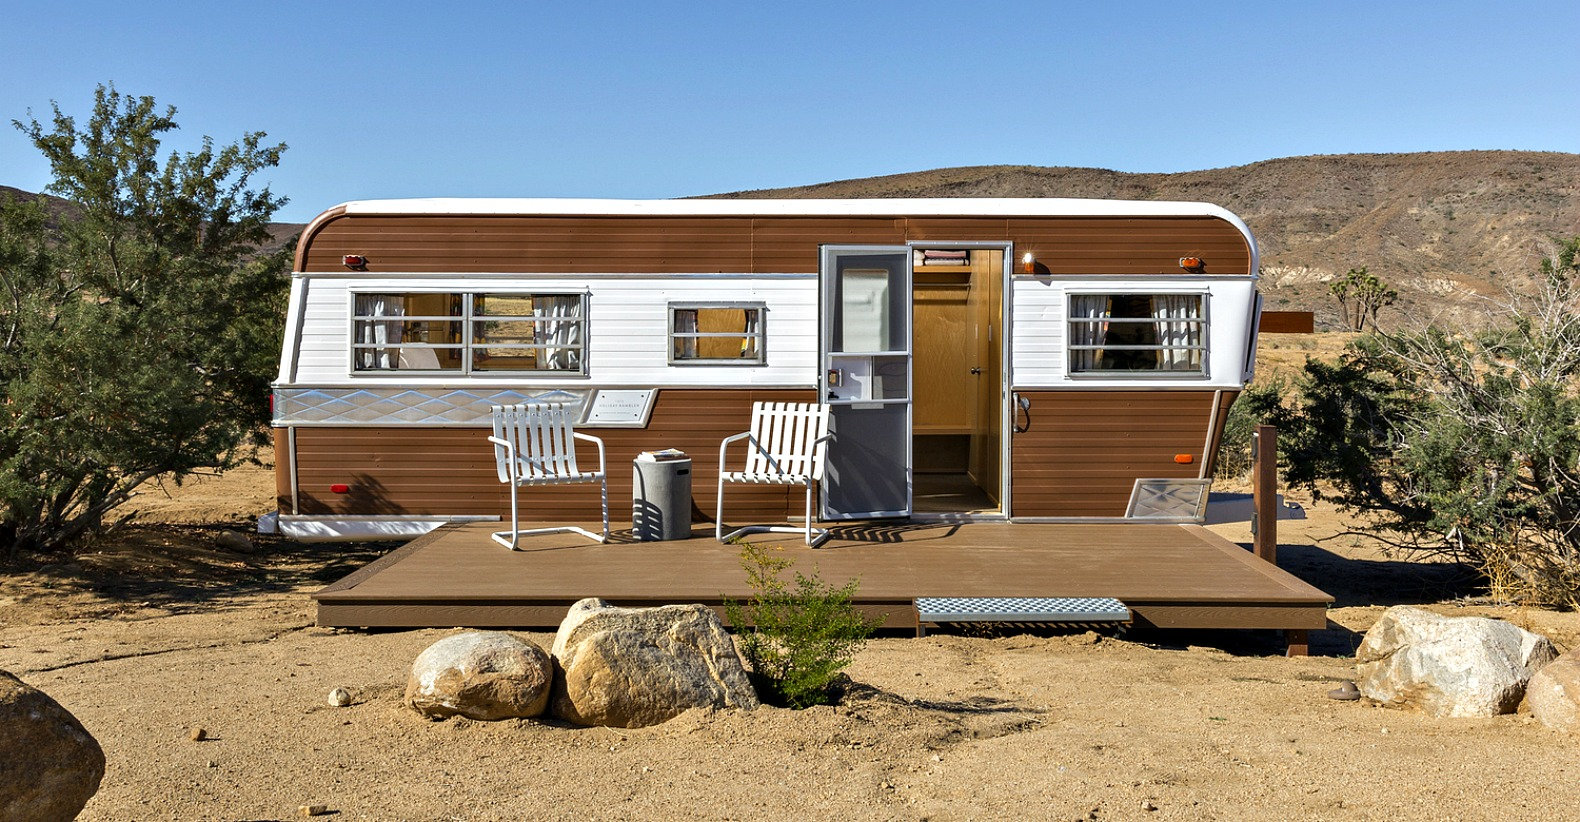 Cool Homestead Retreat With Vintage Trailer Brings Glamping To Mojave Desert